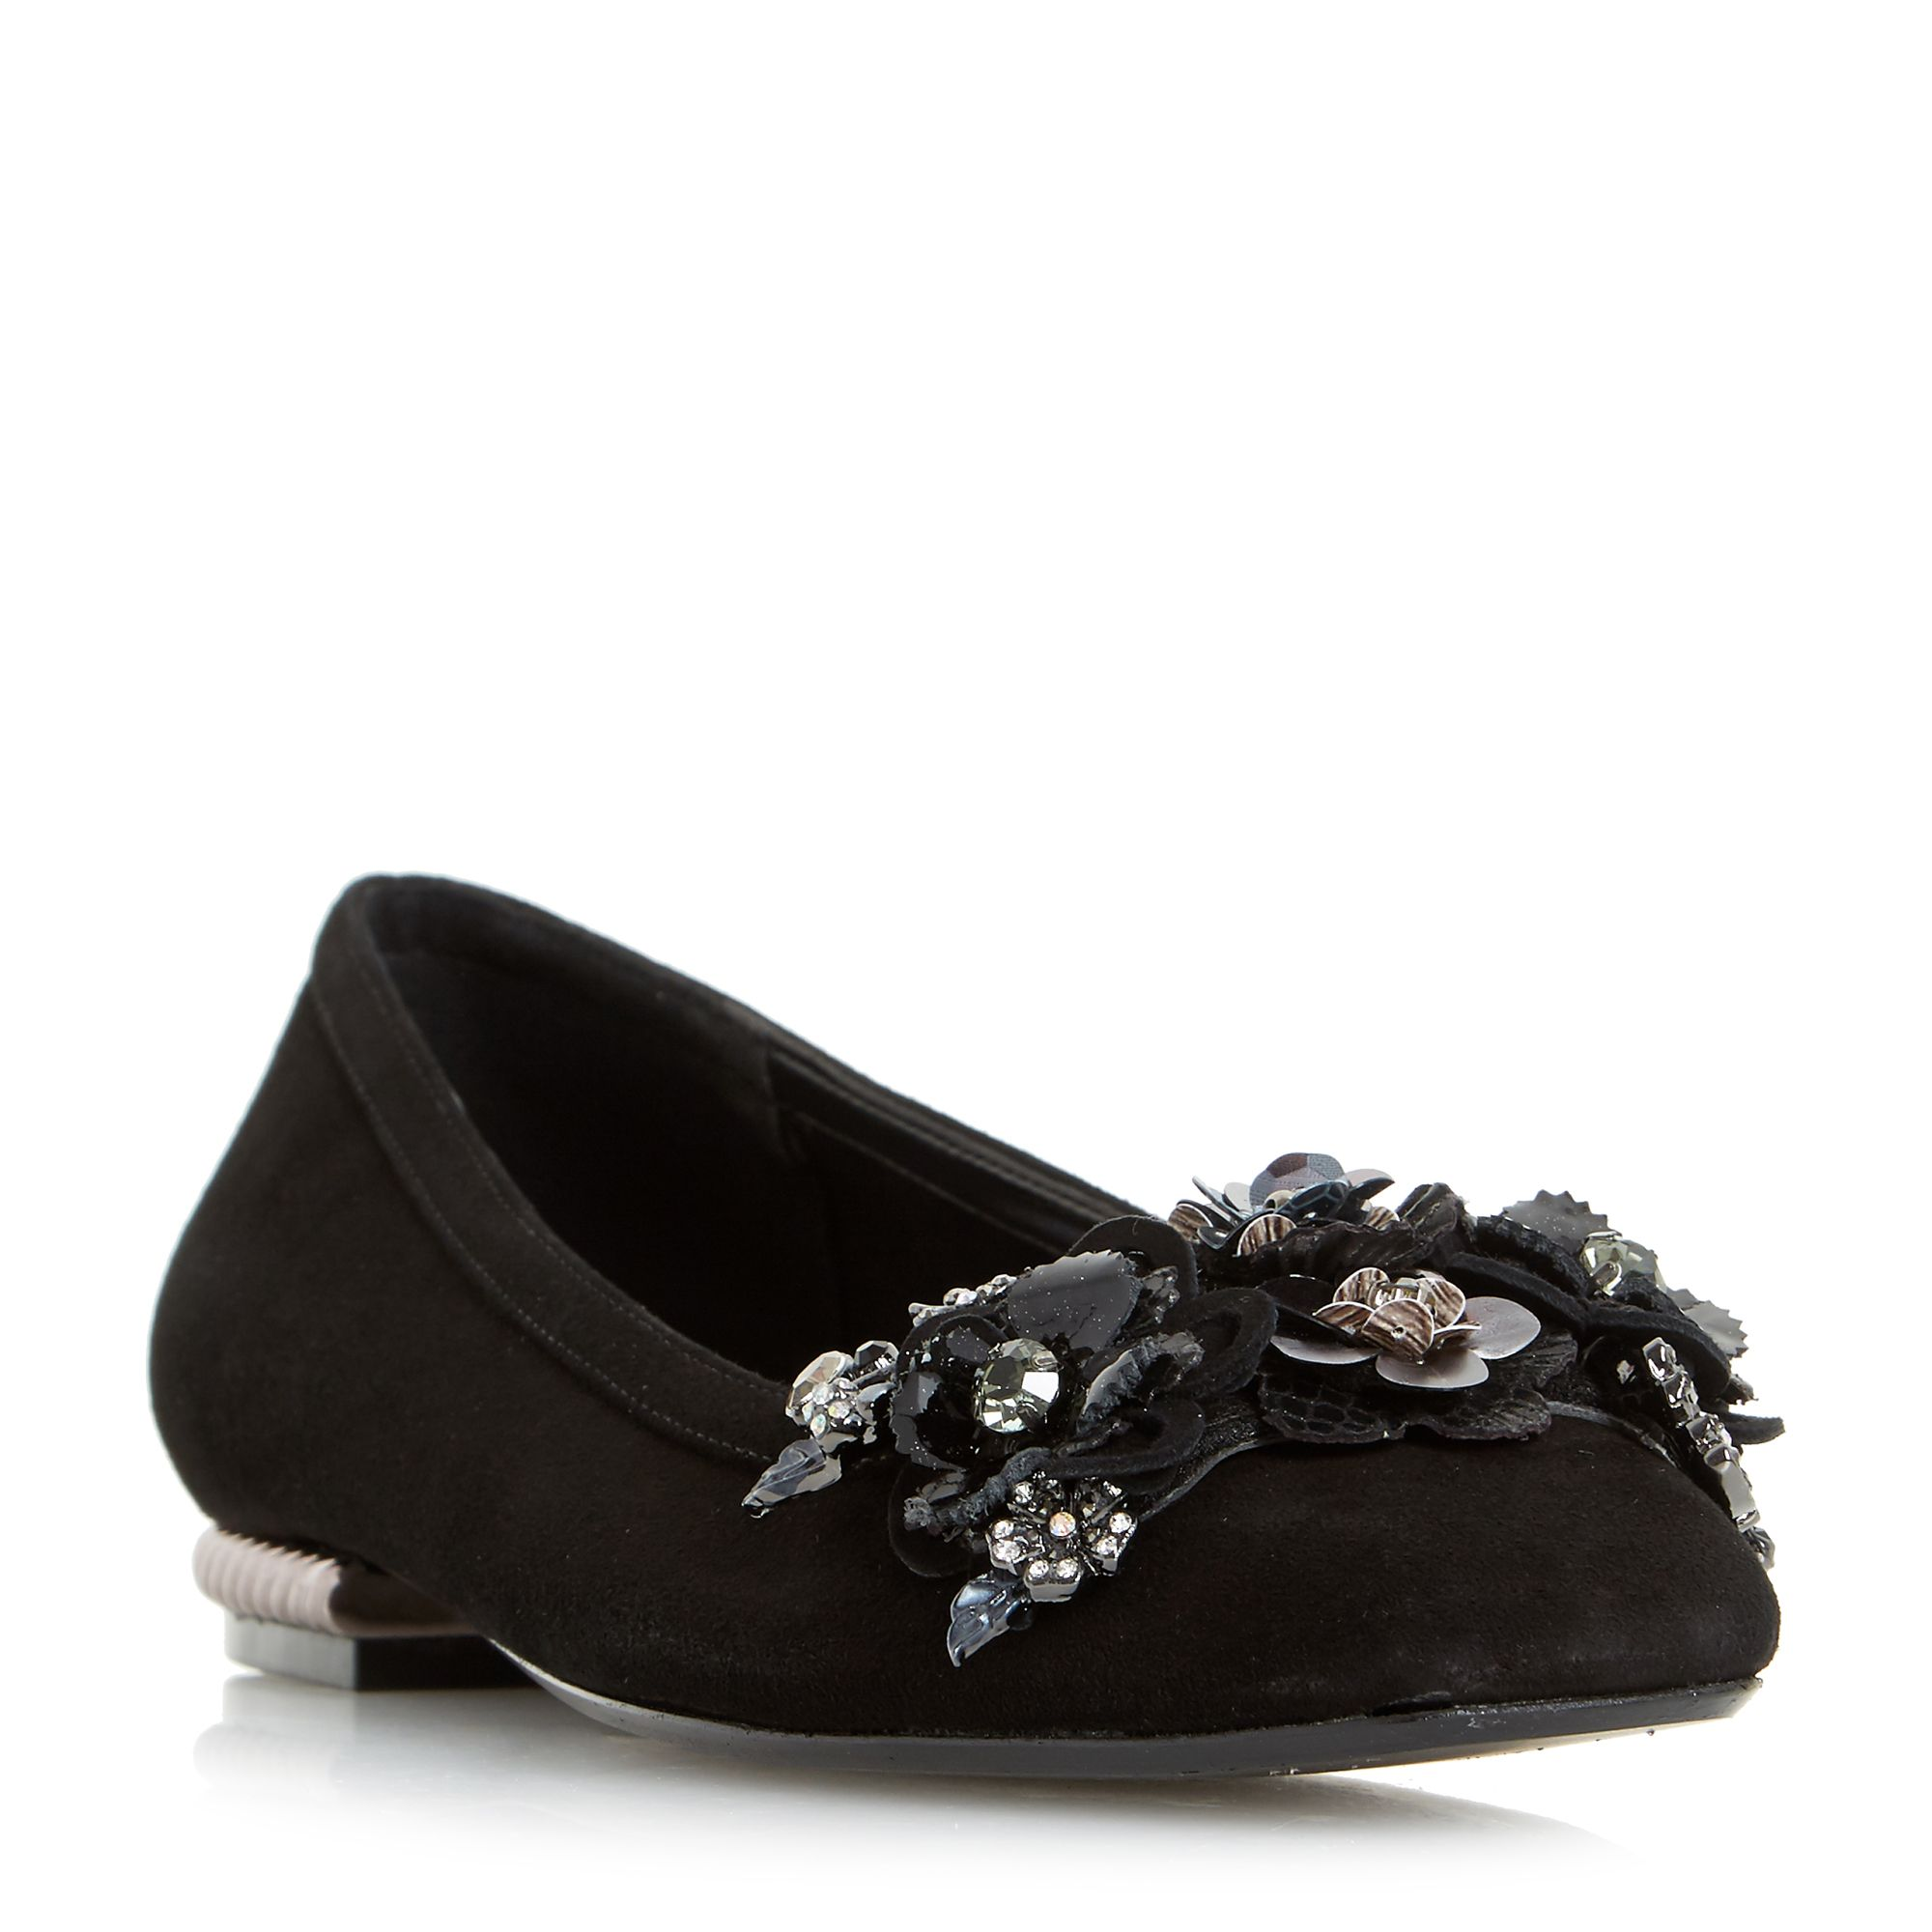 Dune Havannah Flower Garden Pump Shoes, Black Suede